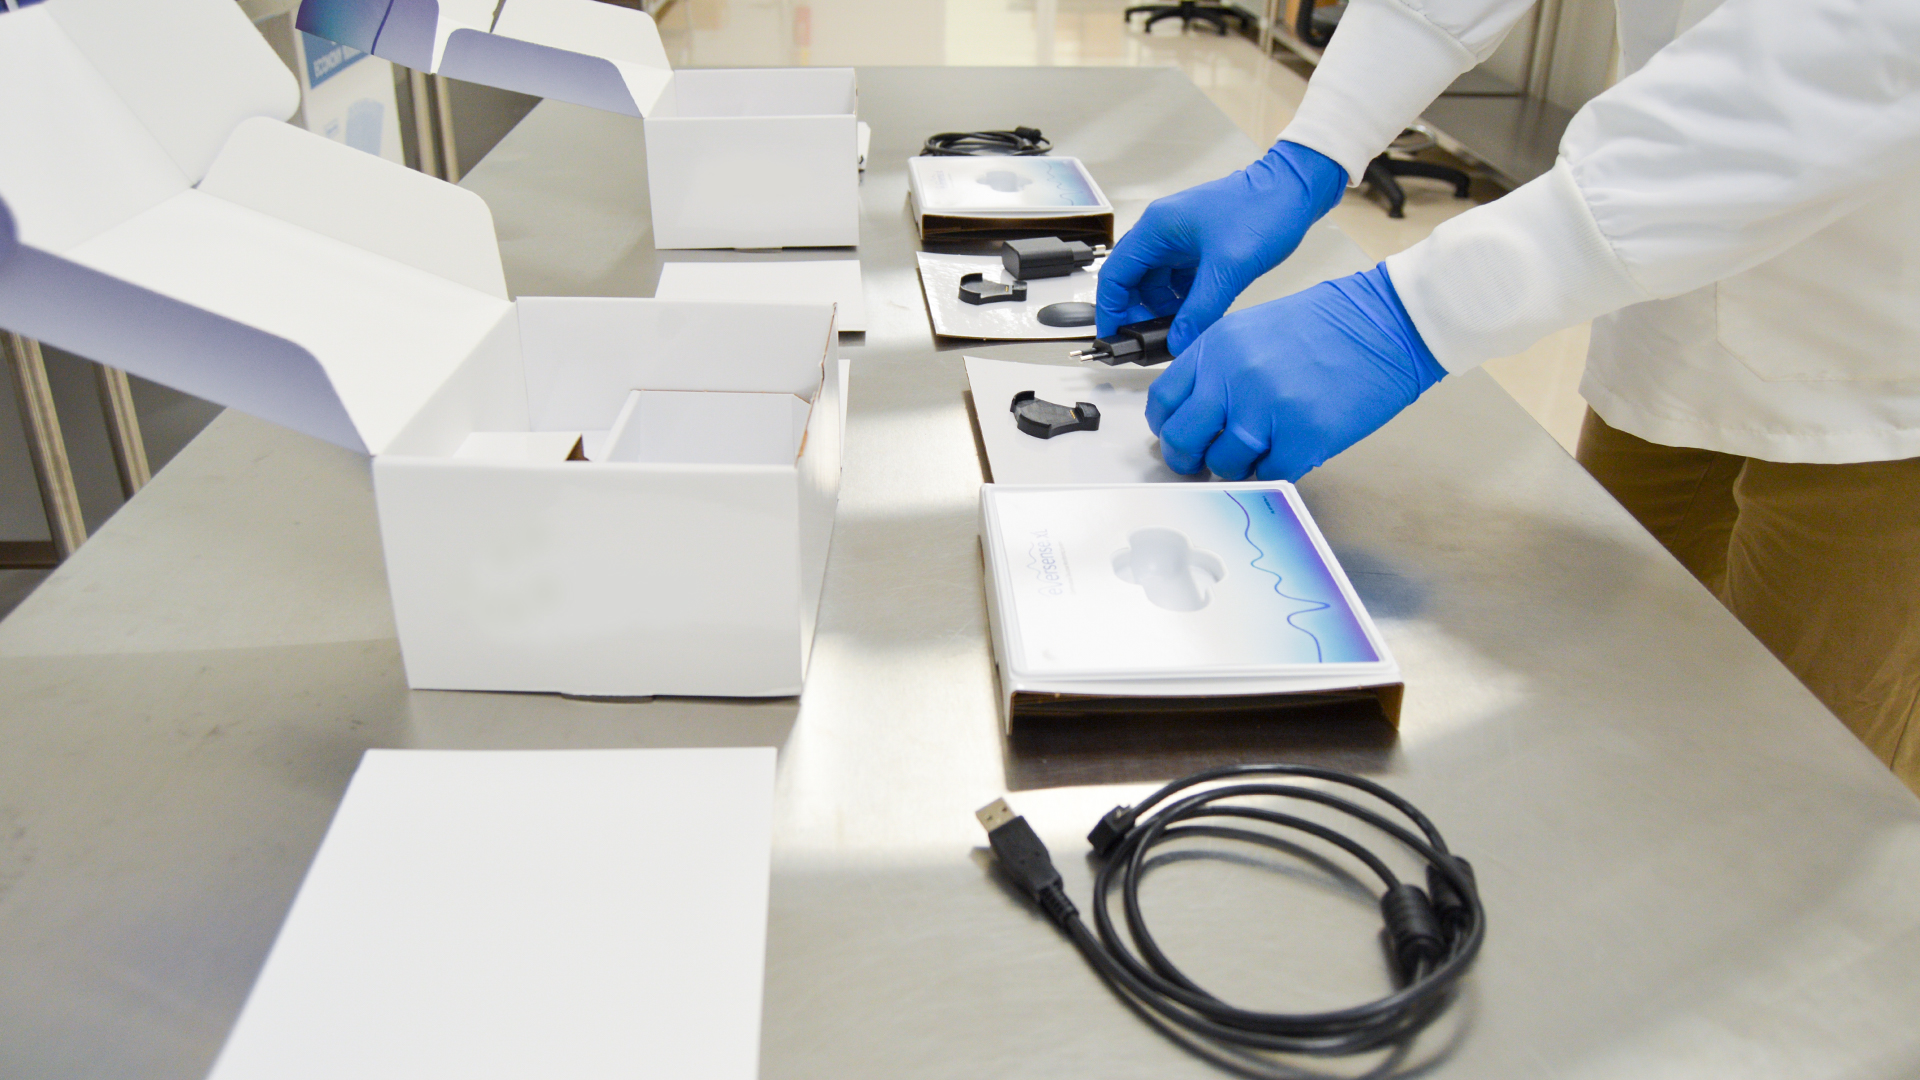 Production Technician completes kitting of medical devices